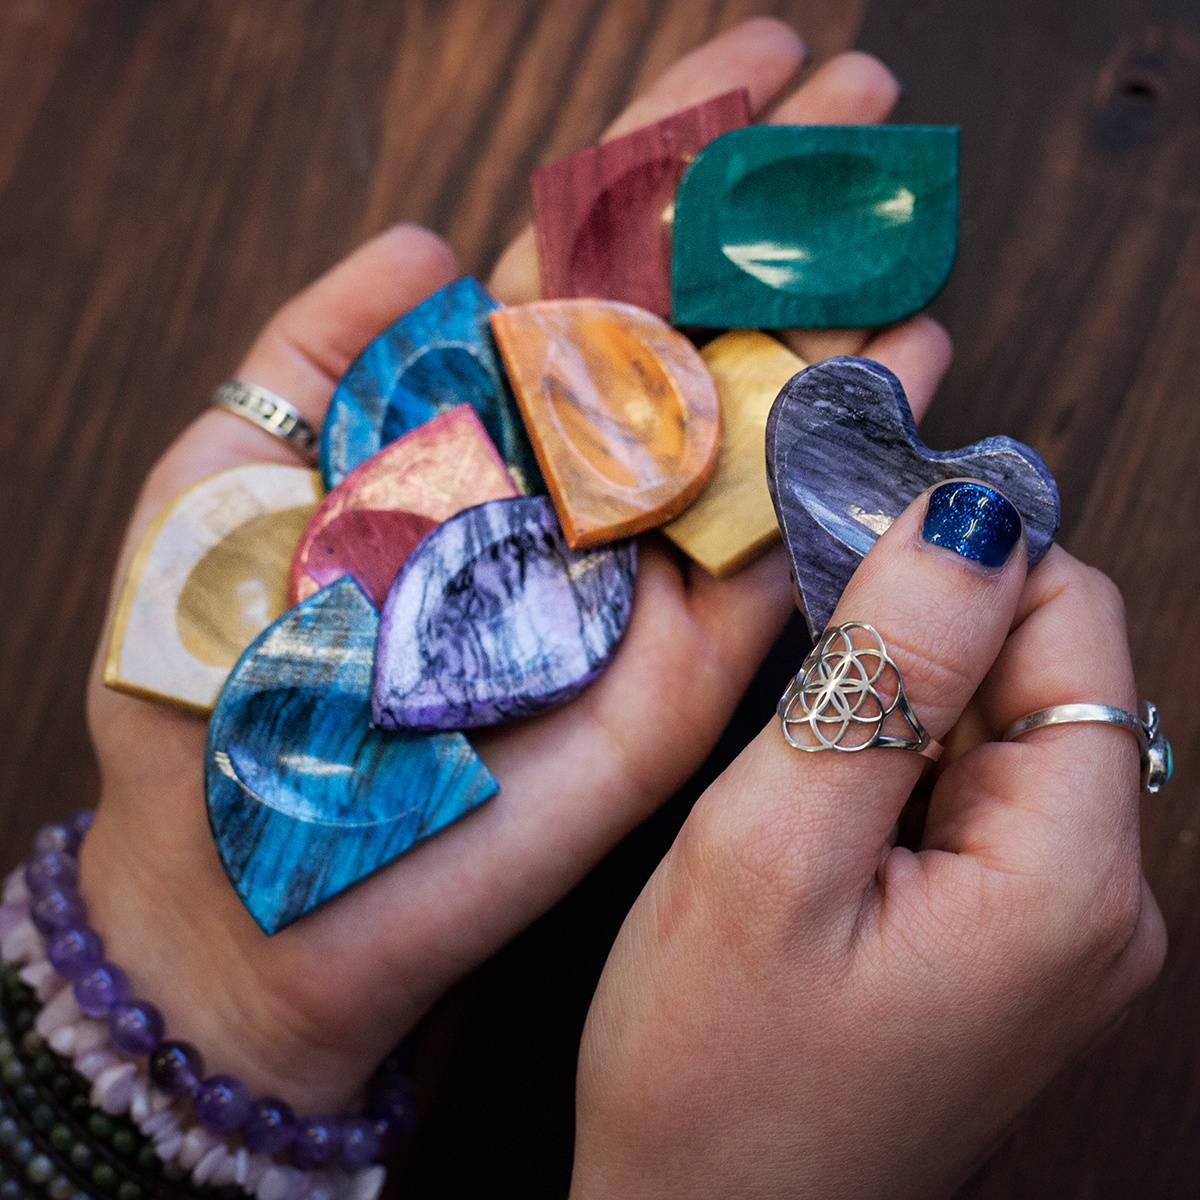 Intuitive Onyx Worry Stones 5_17 featured